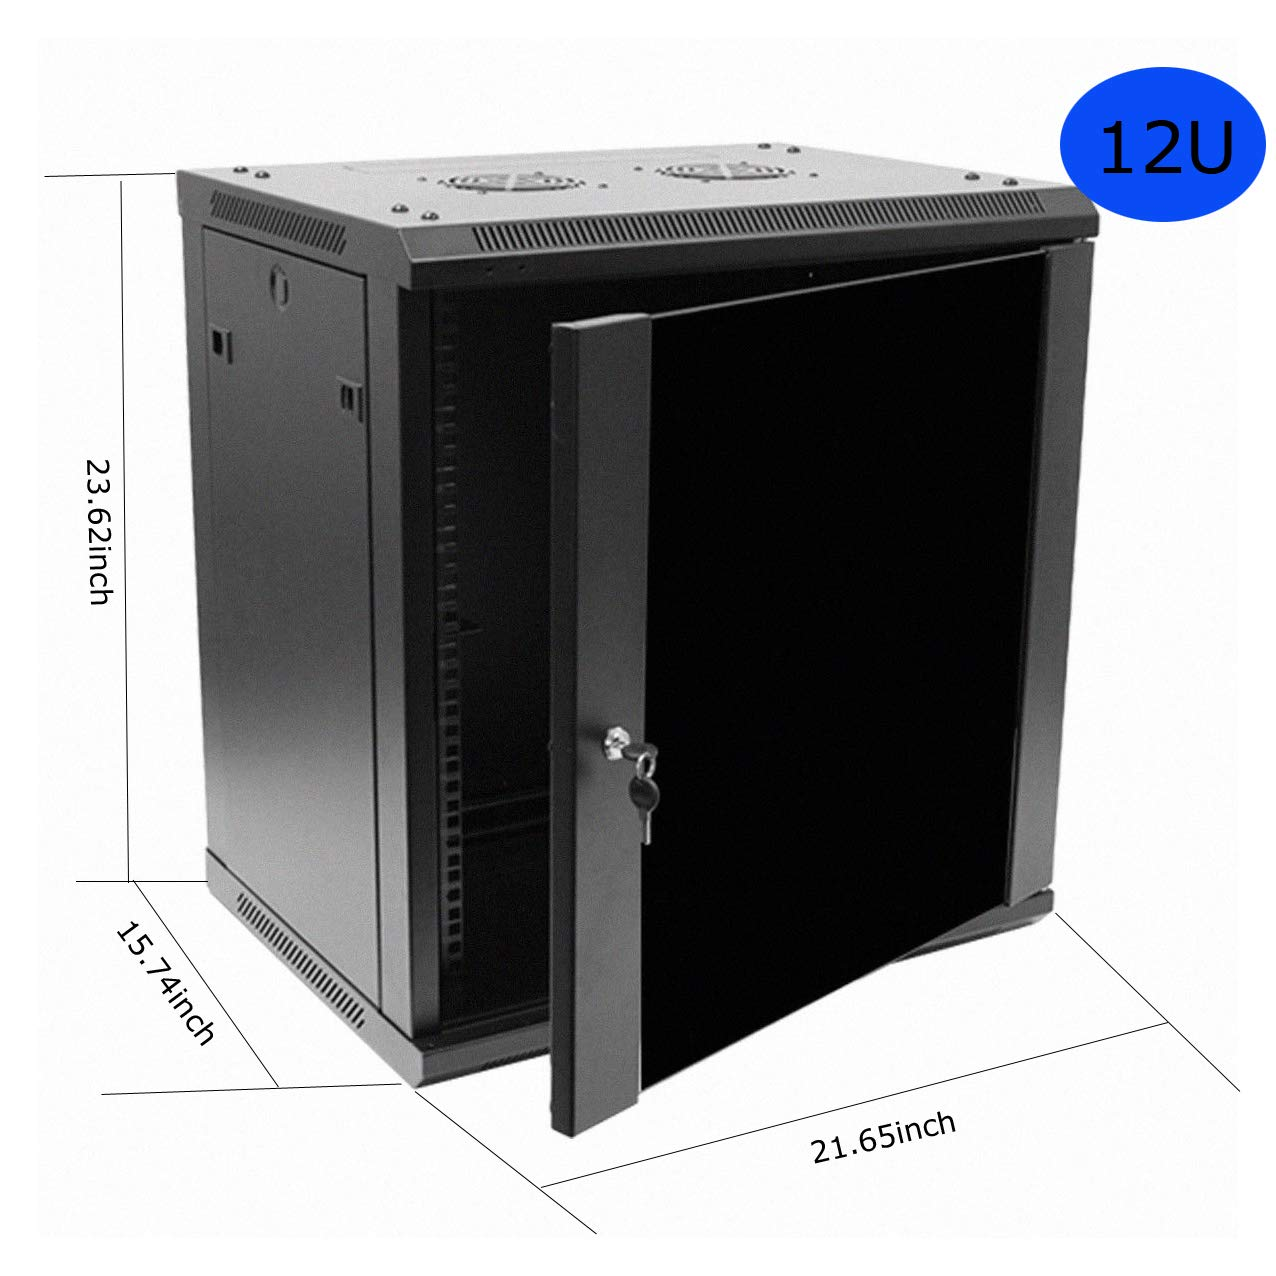 Network Cabinets Network Server Cabinet Rack Enclosure Meshed Door Lock (12U Wall Mount Network)